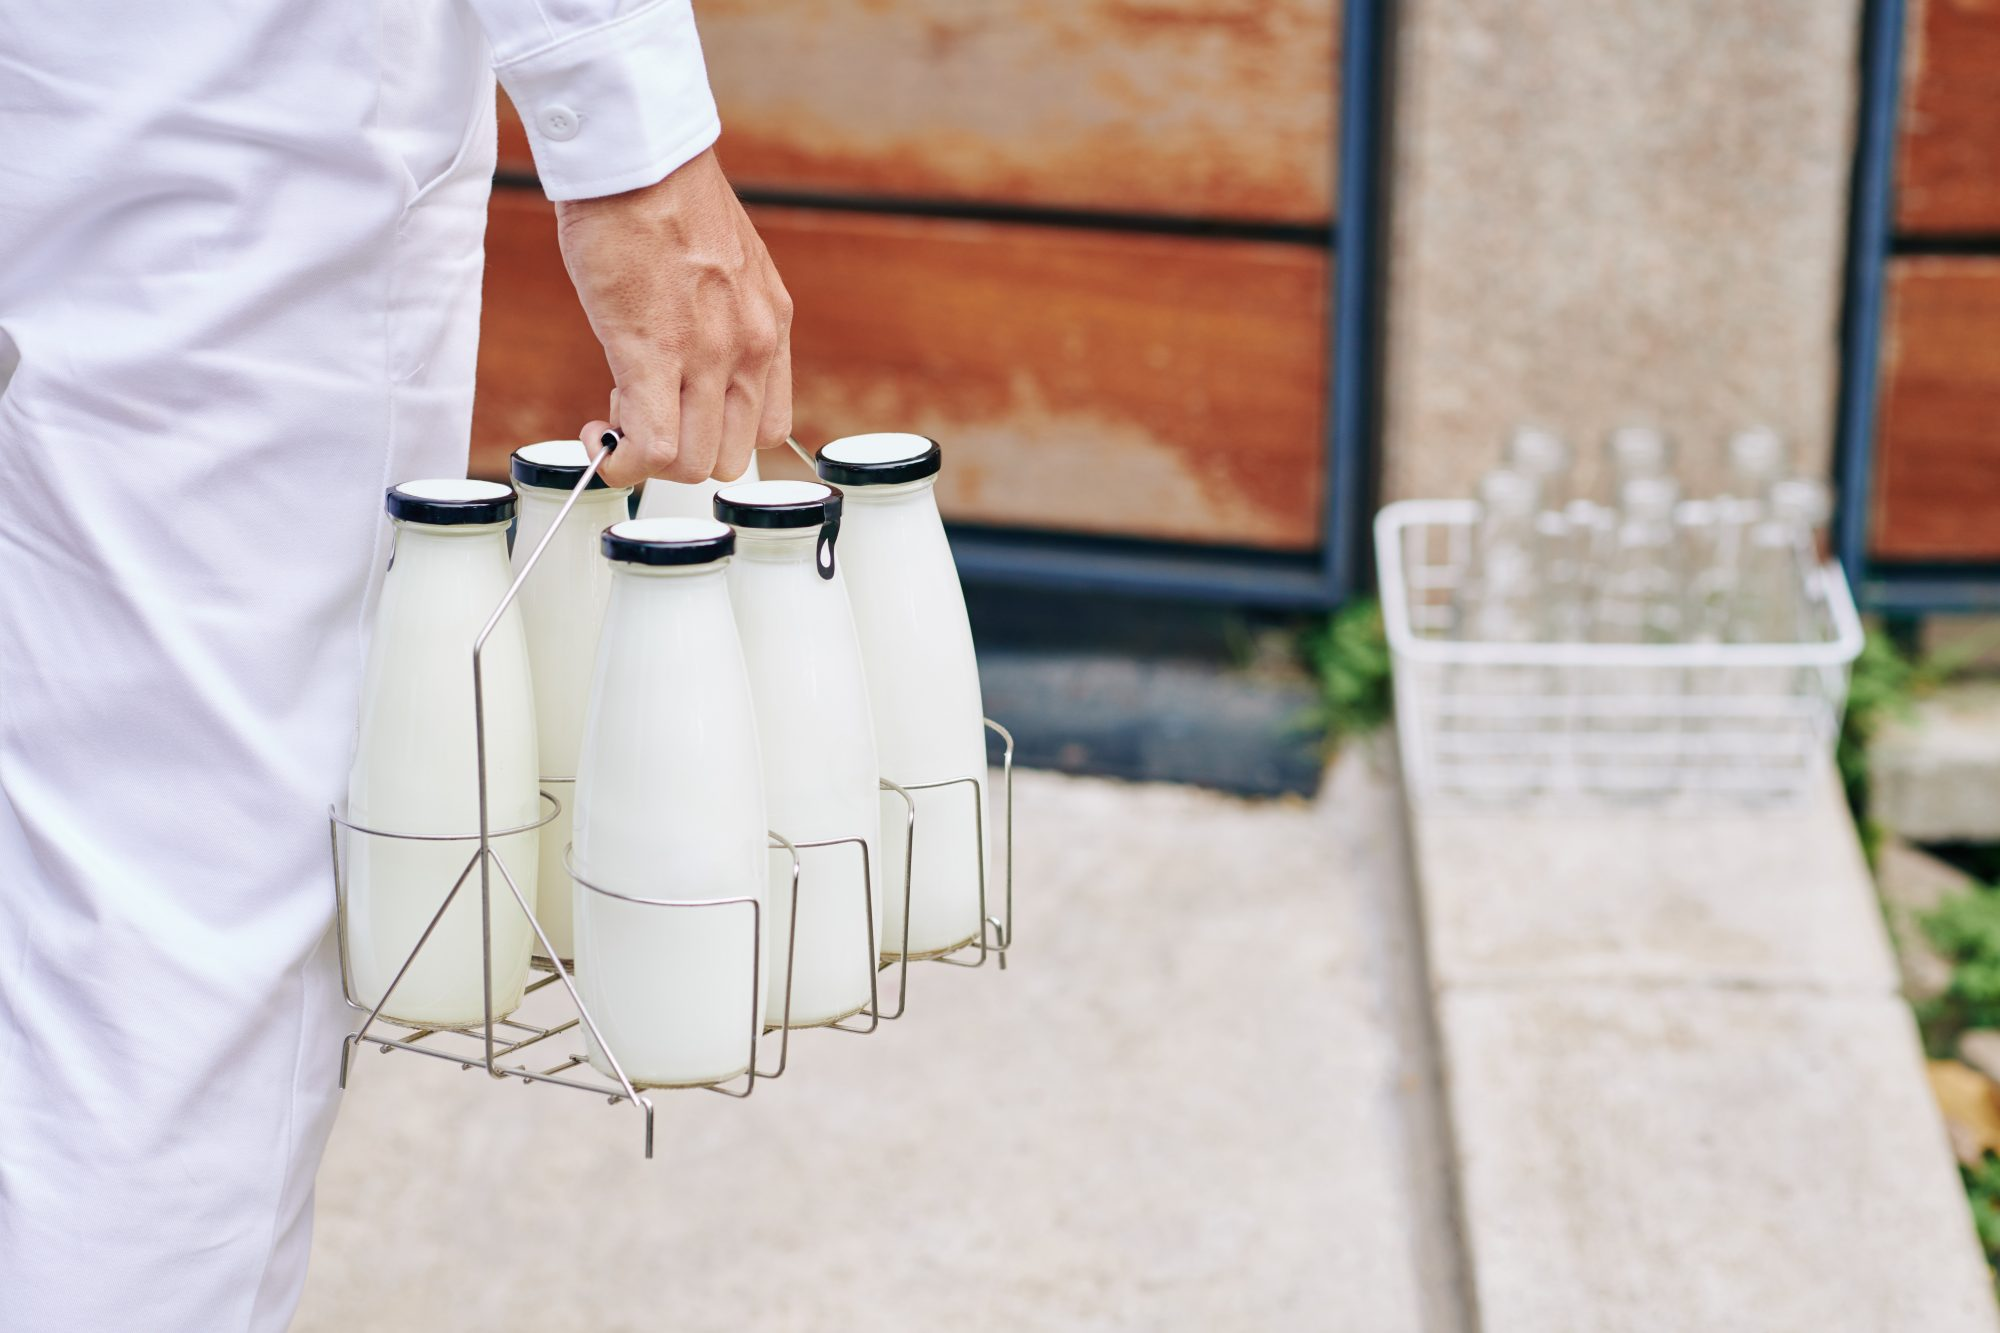 Delivery man carrying milk